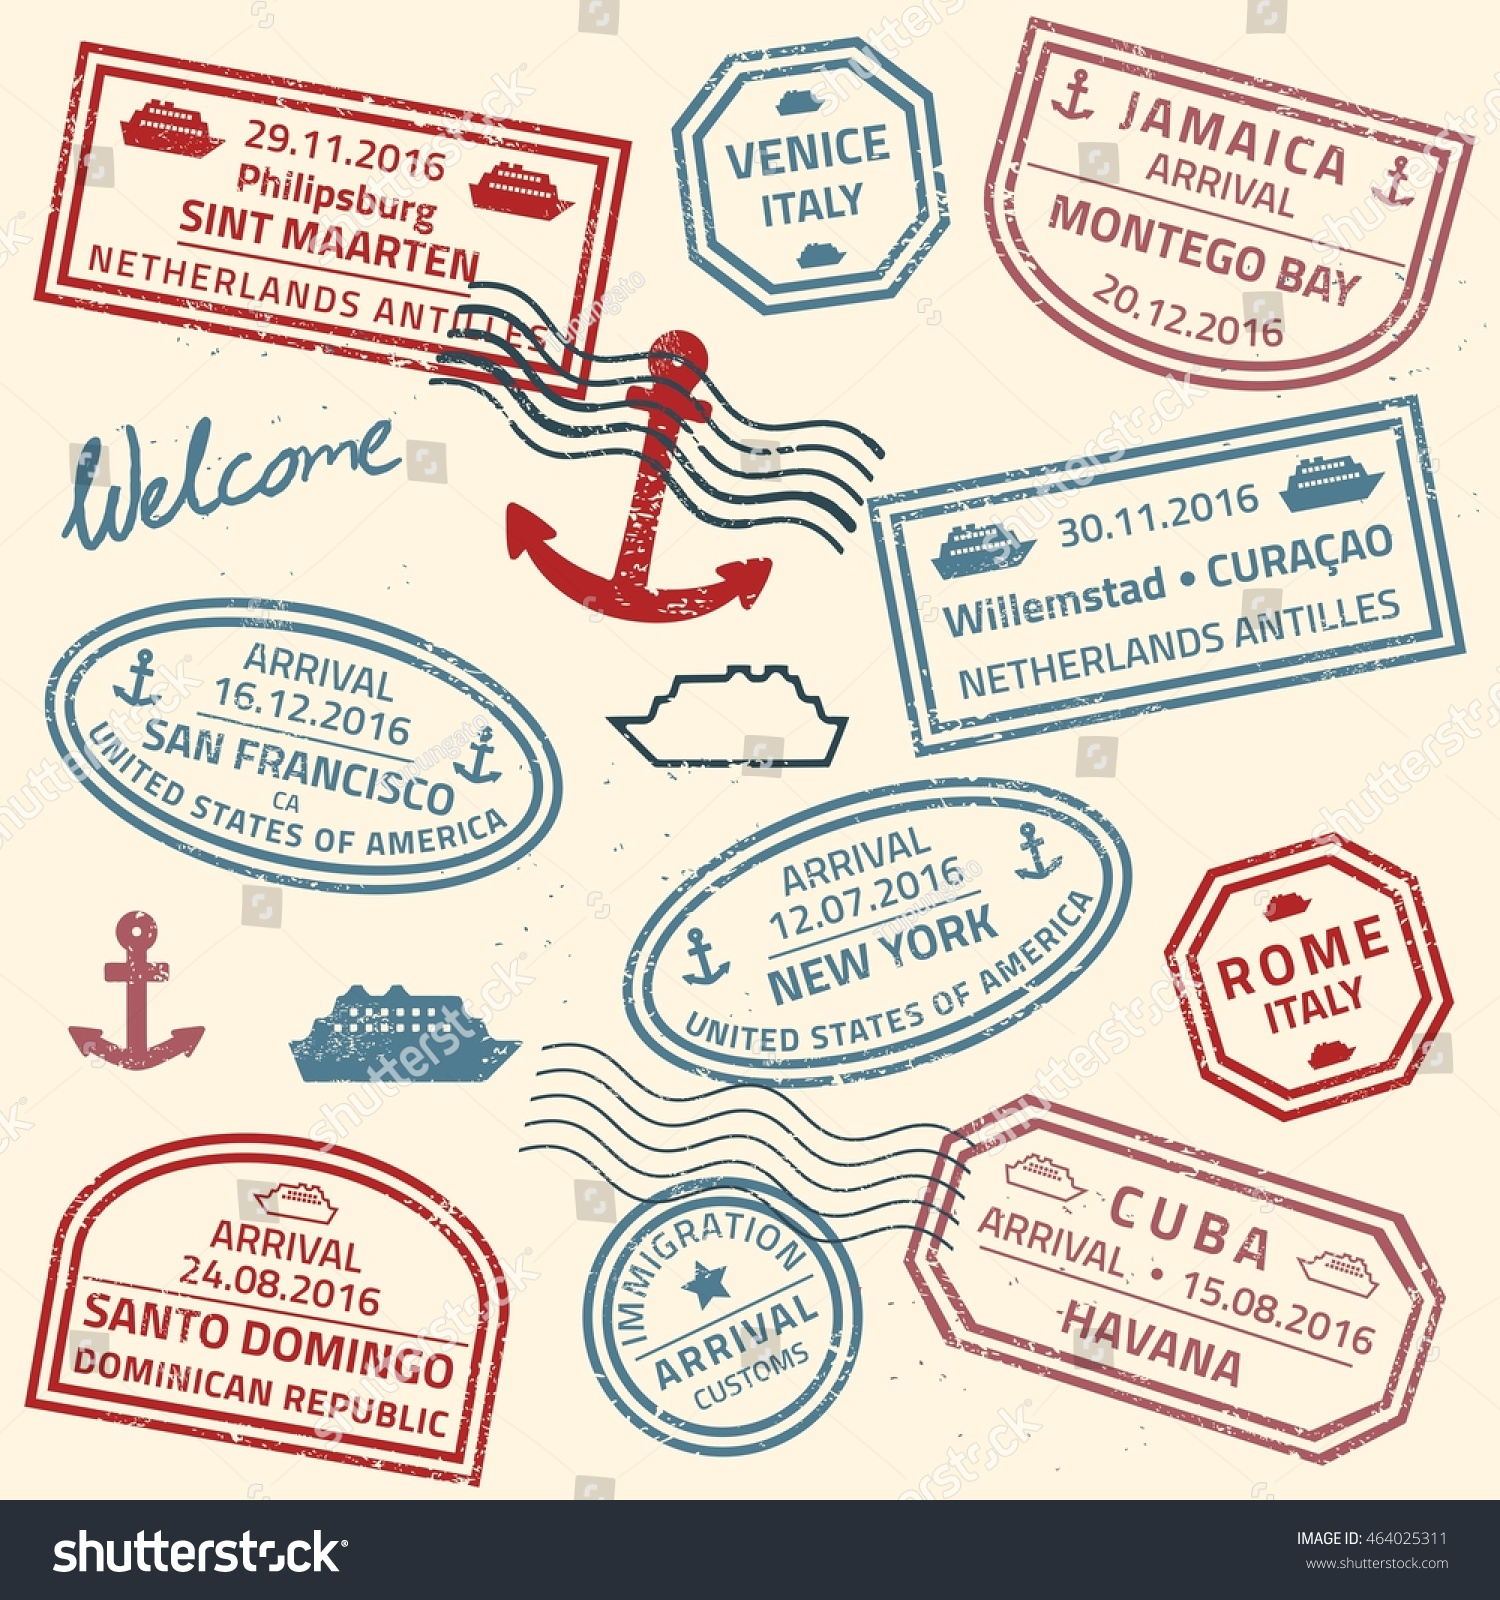 Travel Stamps Vector Background Grunge Fictitious Stock Vector 464025311 - Shutterstock